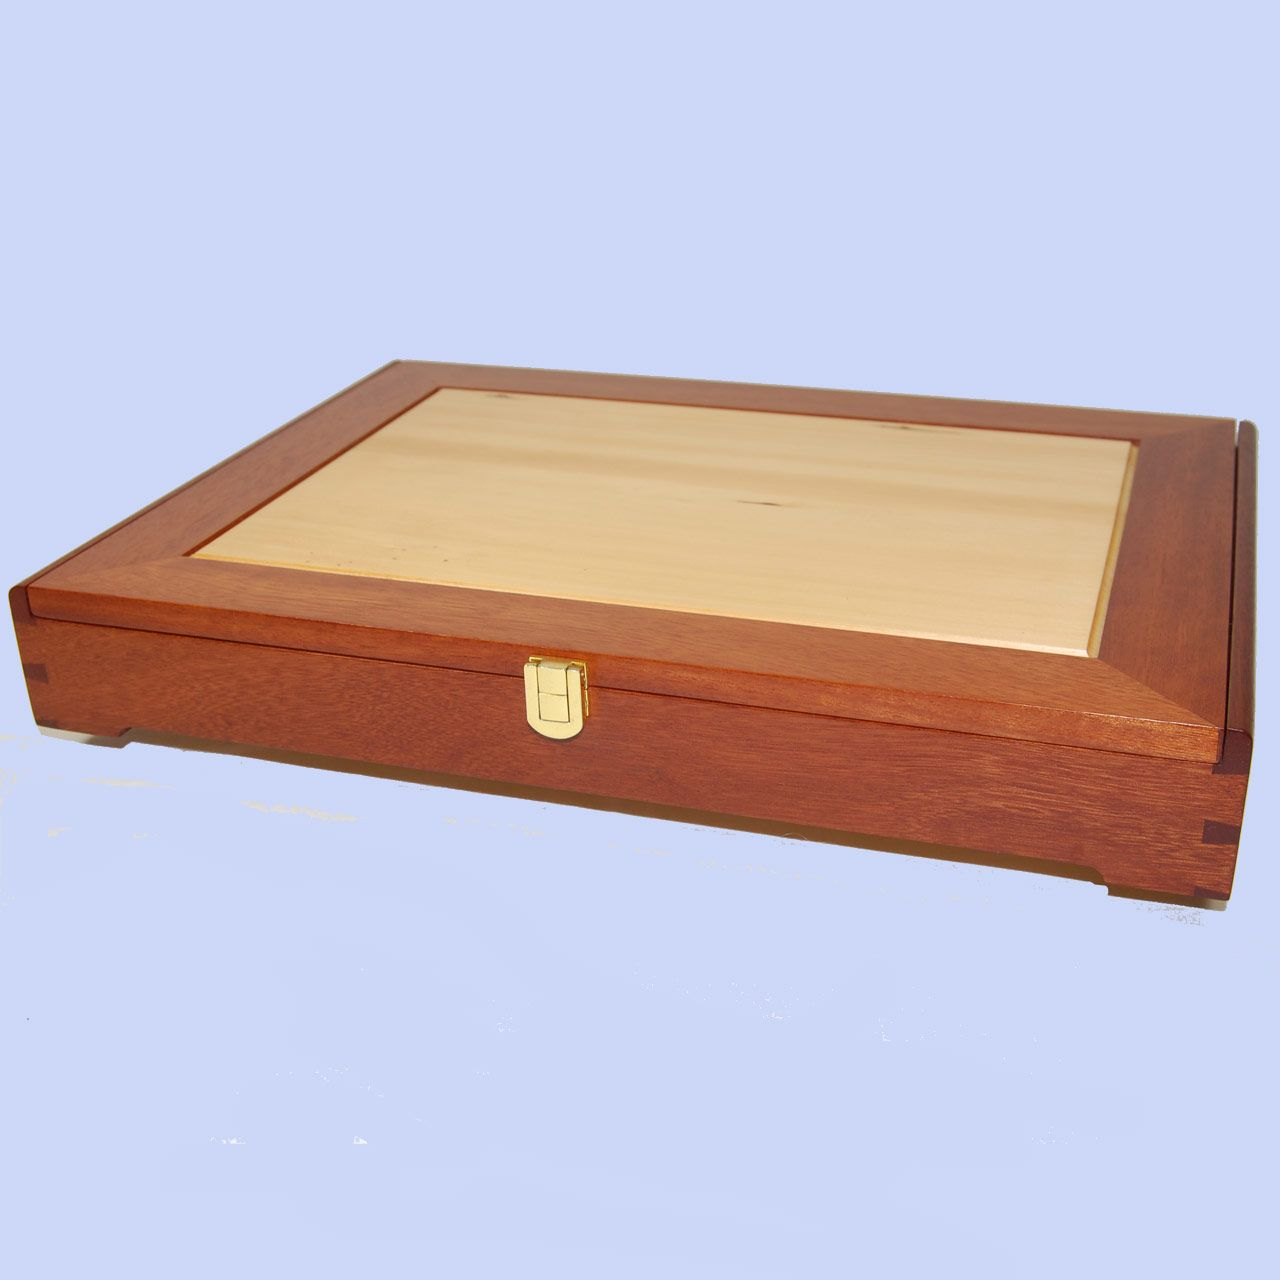 Huon Pine And Miva Mahogany Document Box Handmade In Australia  # Miva Diseno Muebles